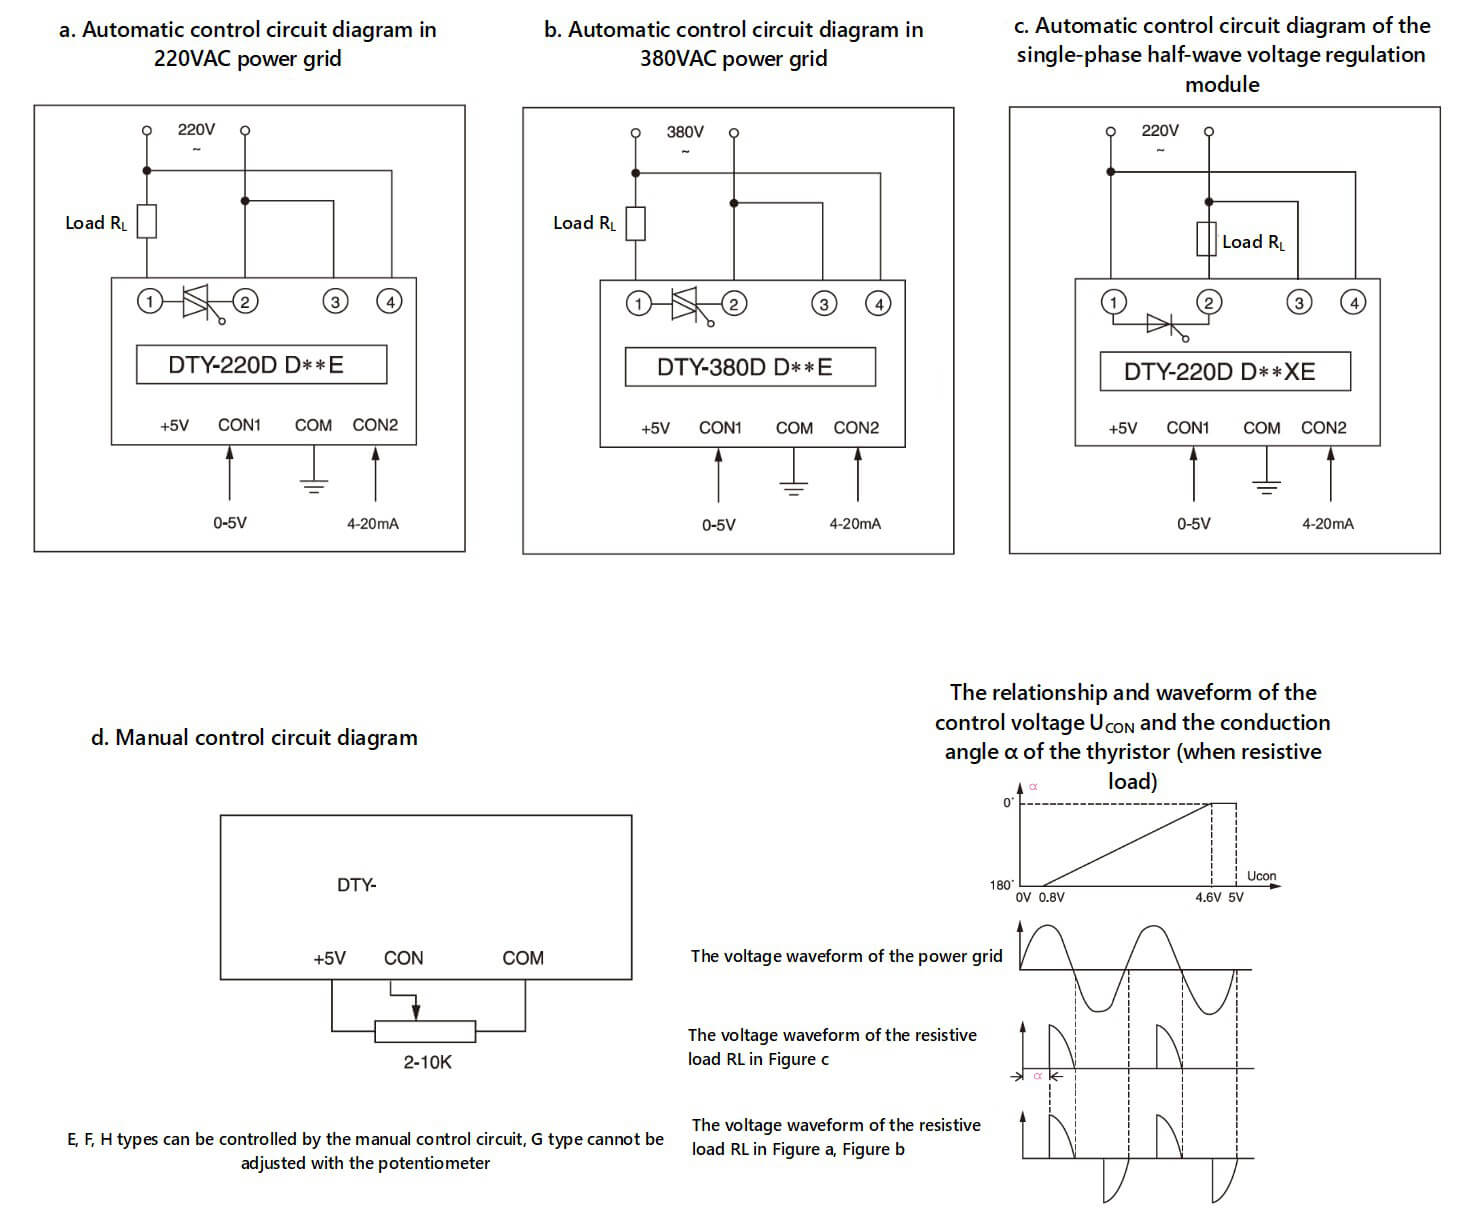 MGR-DT_Series_Voltage_Power_Regulator_Diagram